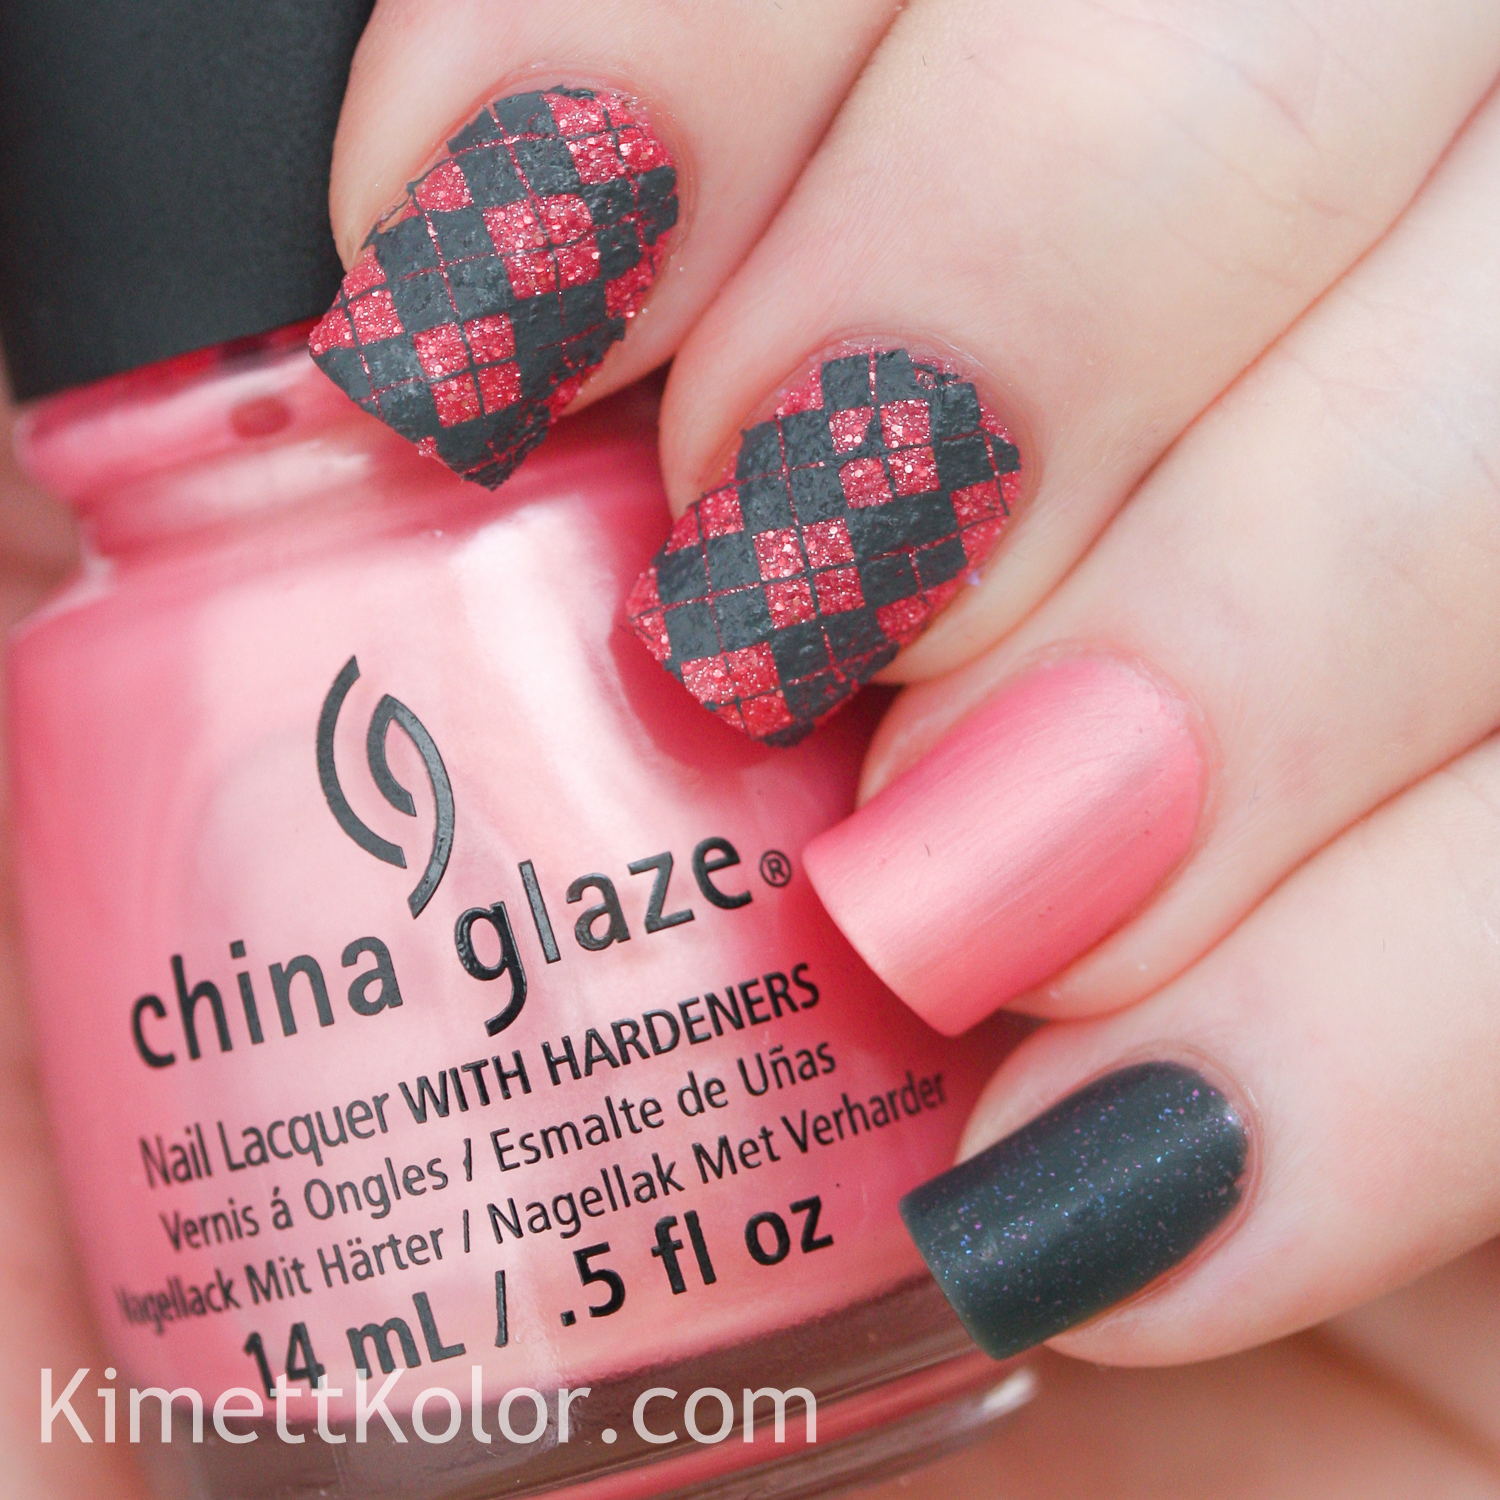 KimettKolor China Glaze grey pink nail art